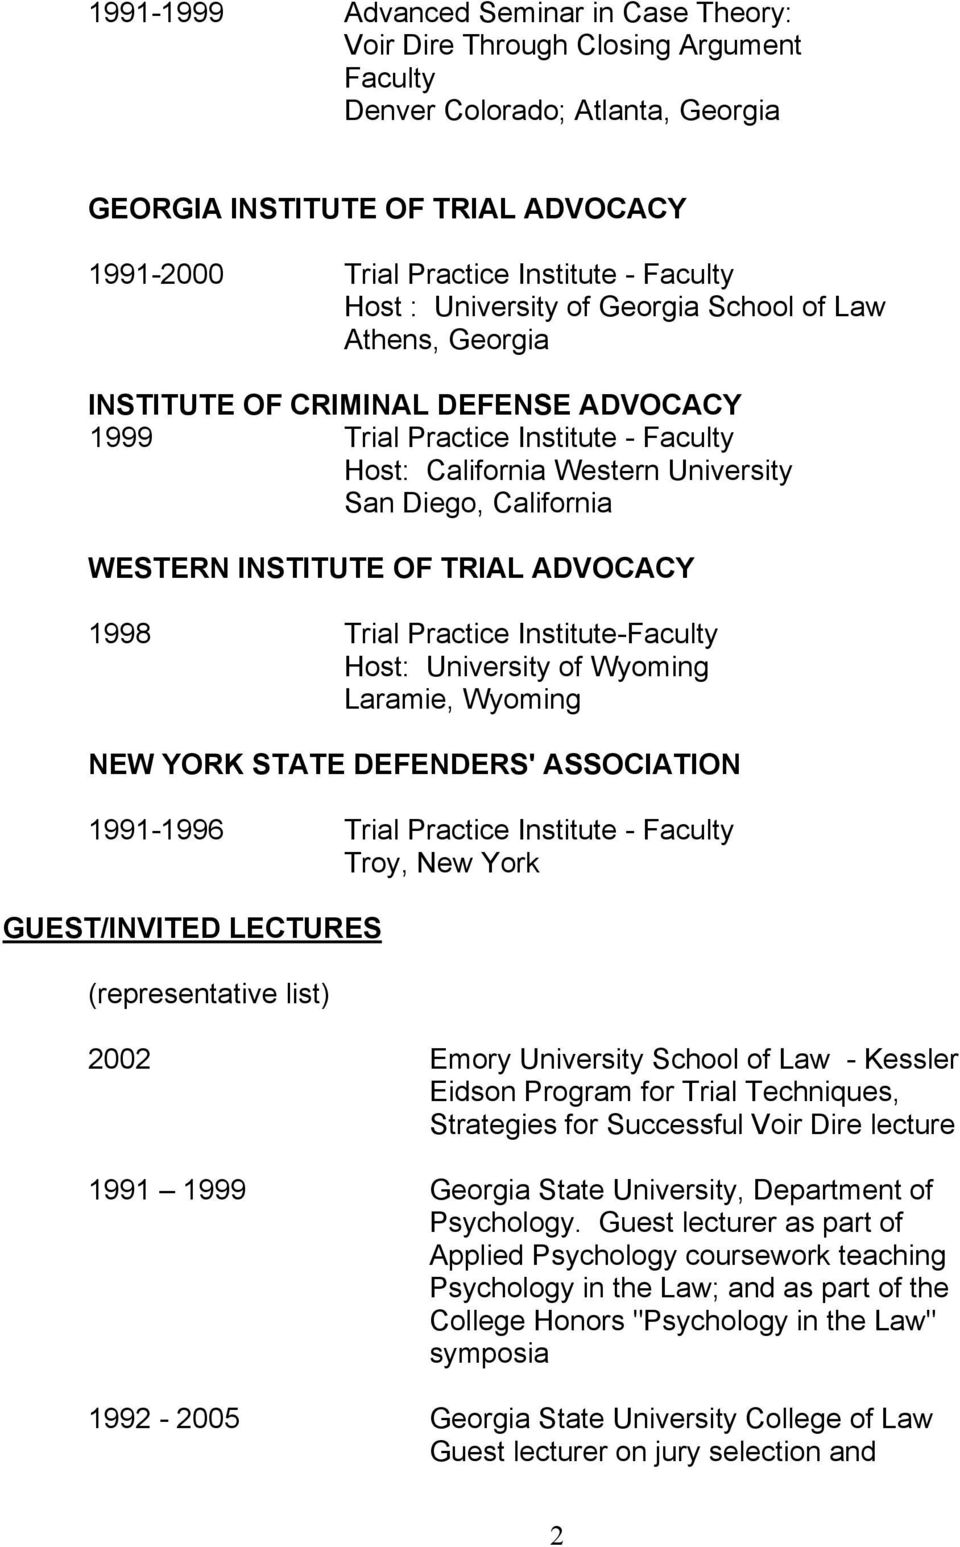 INSTITUTE OF TRIAL ADVOCACY 1998 Trial Practice Institute-Faculty Host: University of Wyoming Laramie, Wyoming NEW YORK STATE DEFENDERS' ASSOCIATION 1991-1996 Trial Practice Institute - Faculty Troy,